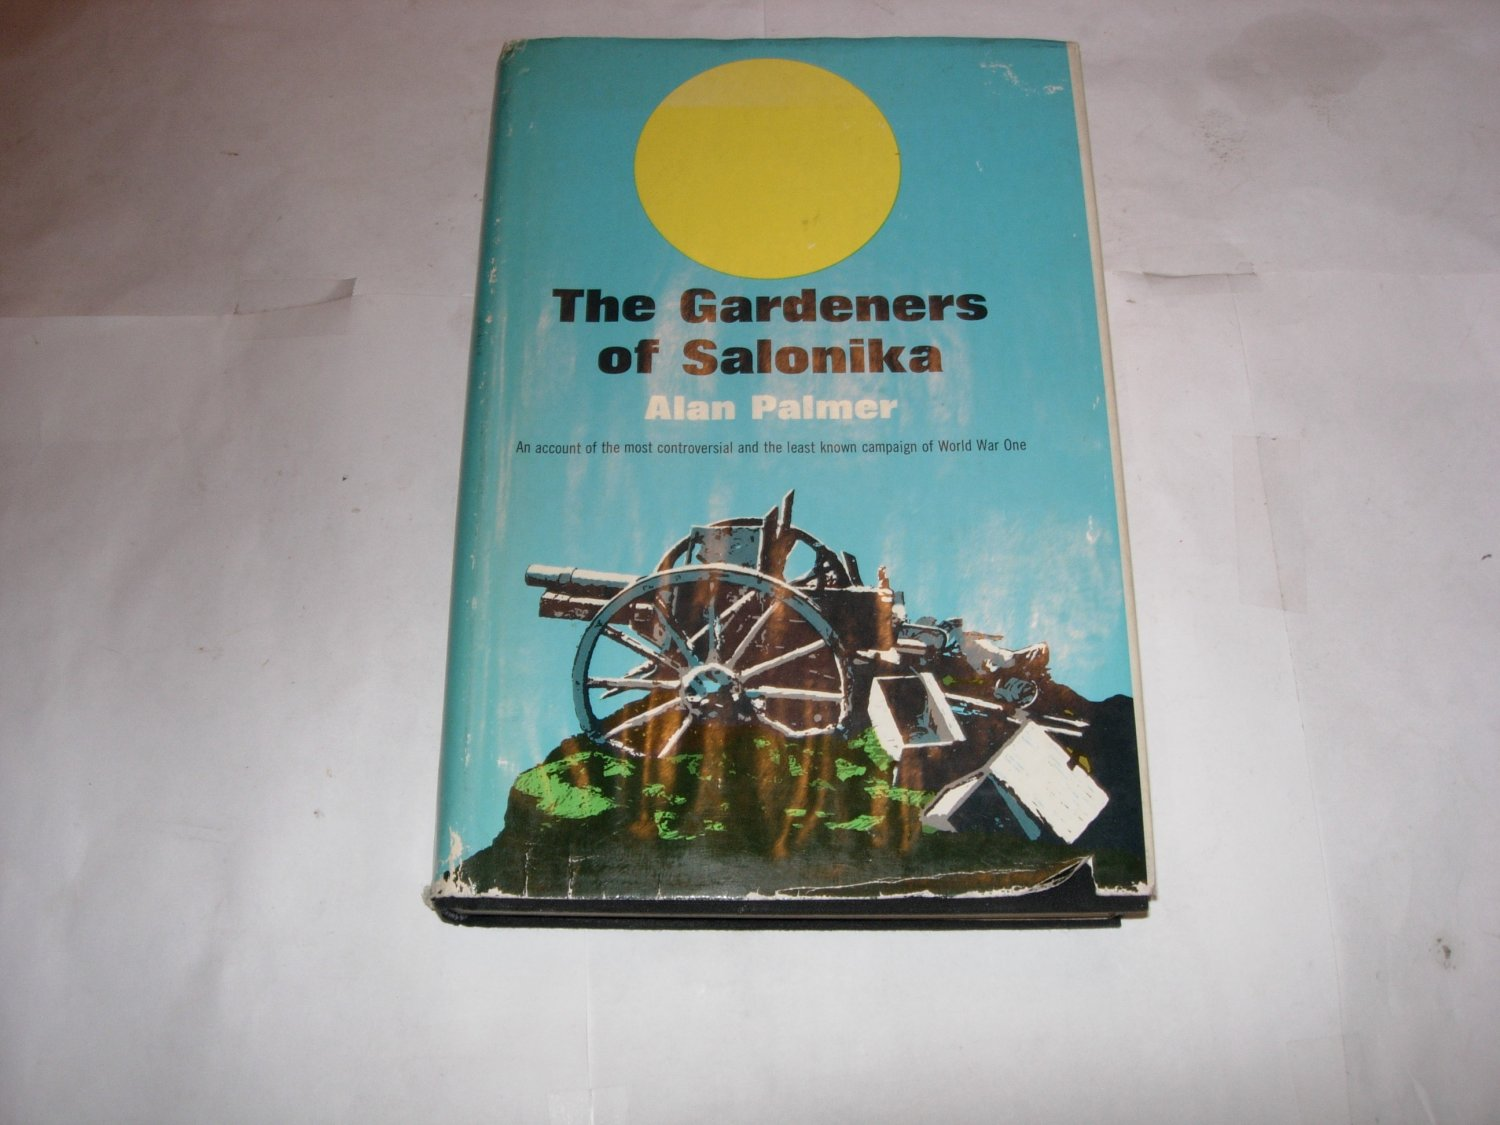 THE GARDENERS OF SALONIKA-BY ALAN PALMER 1965 1ST EDITION